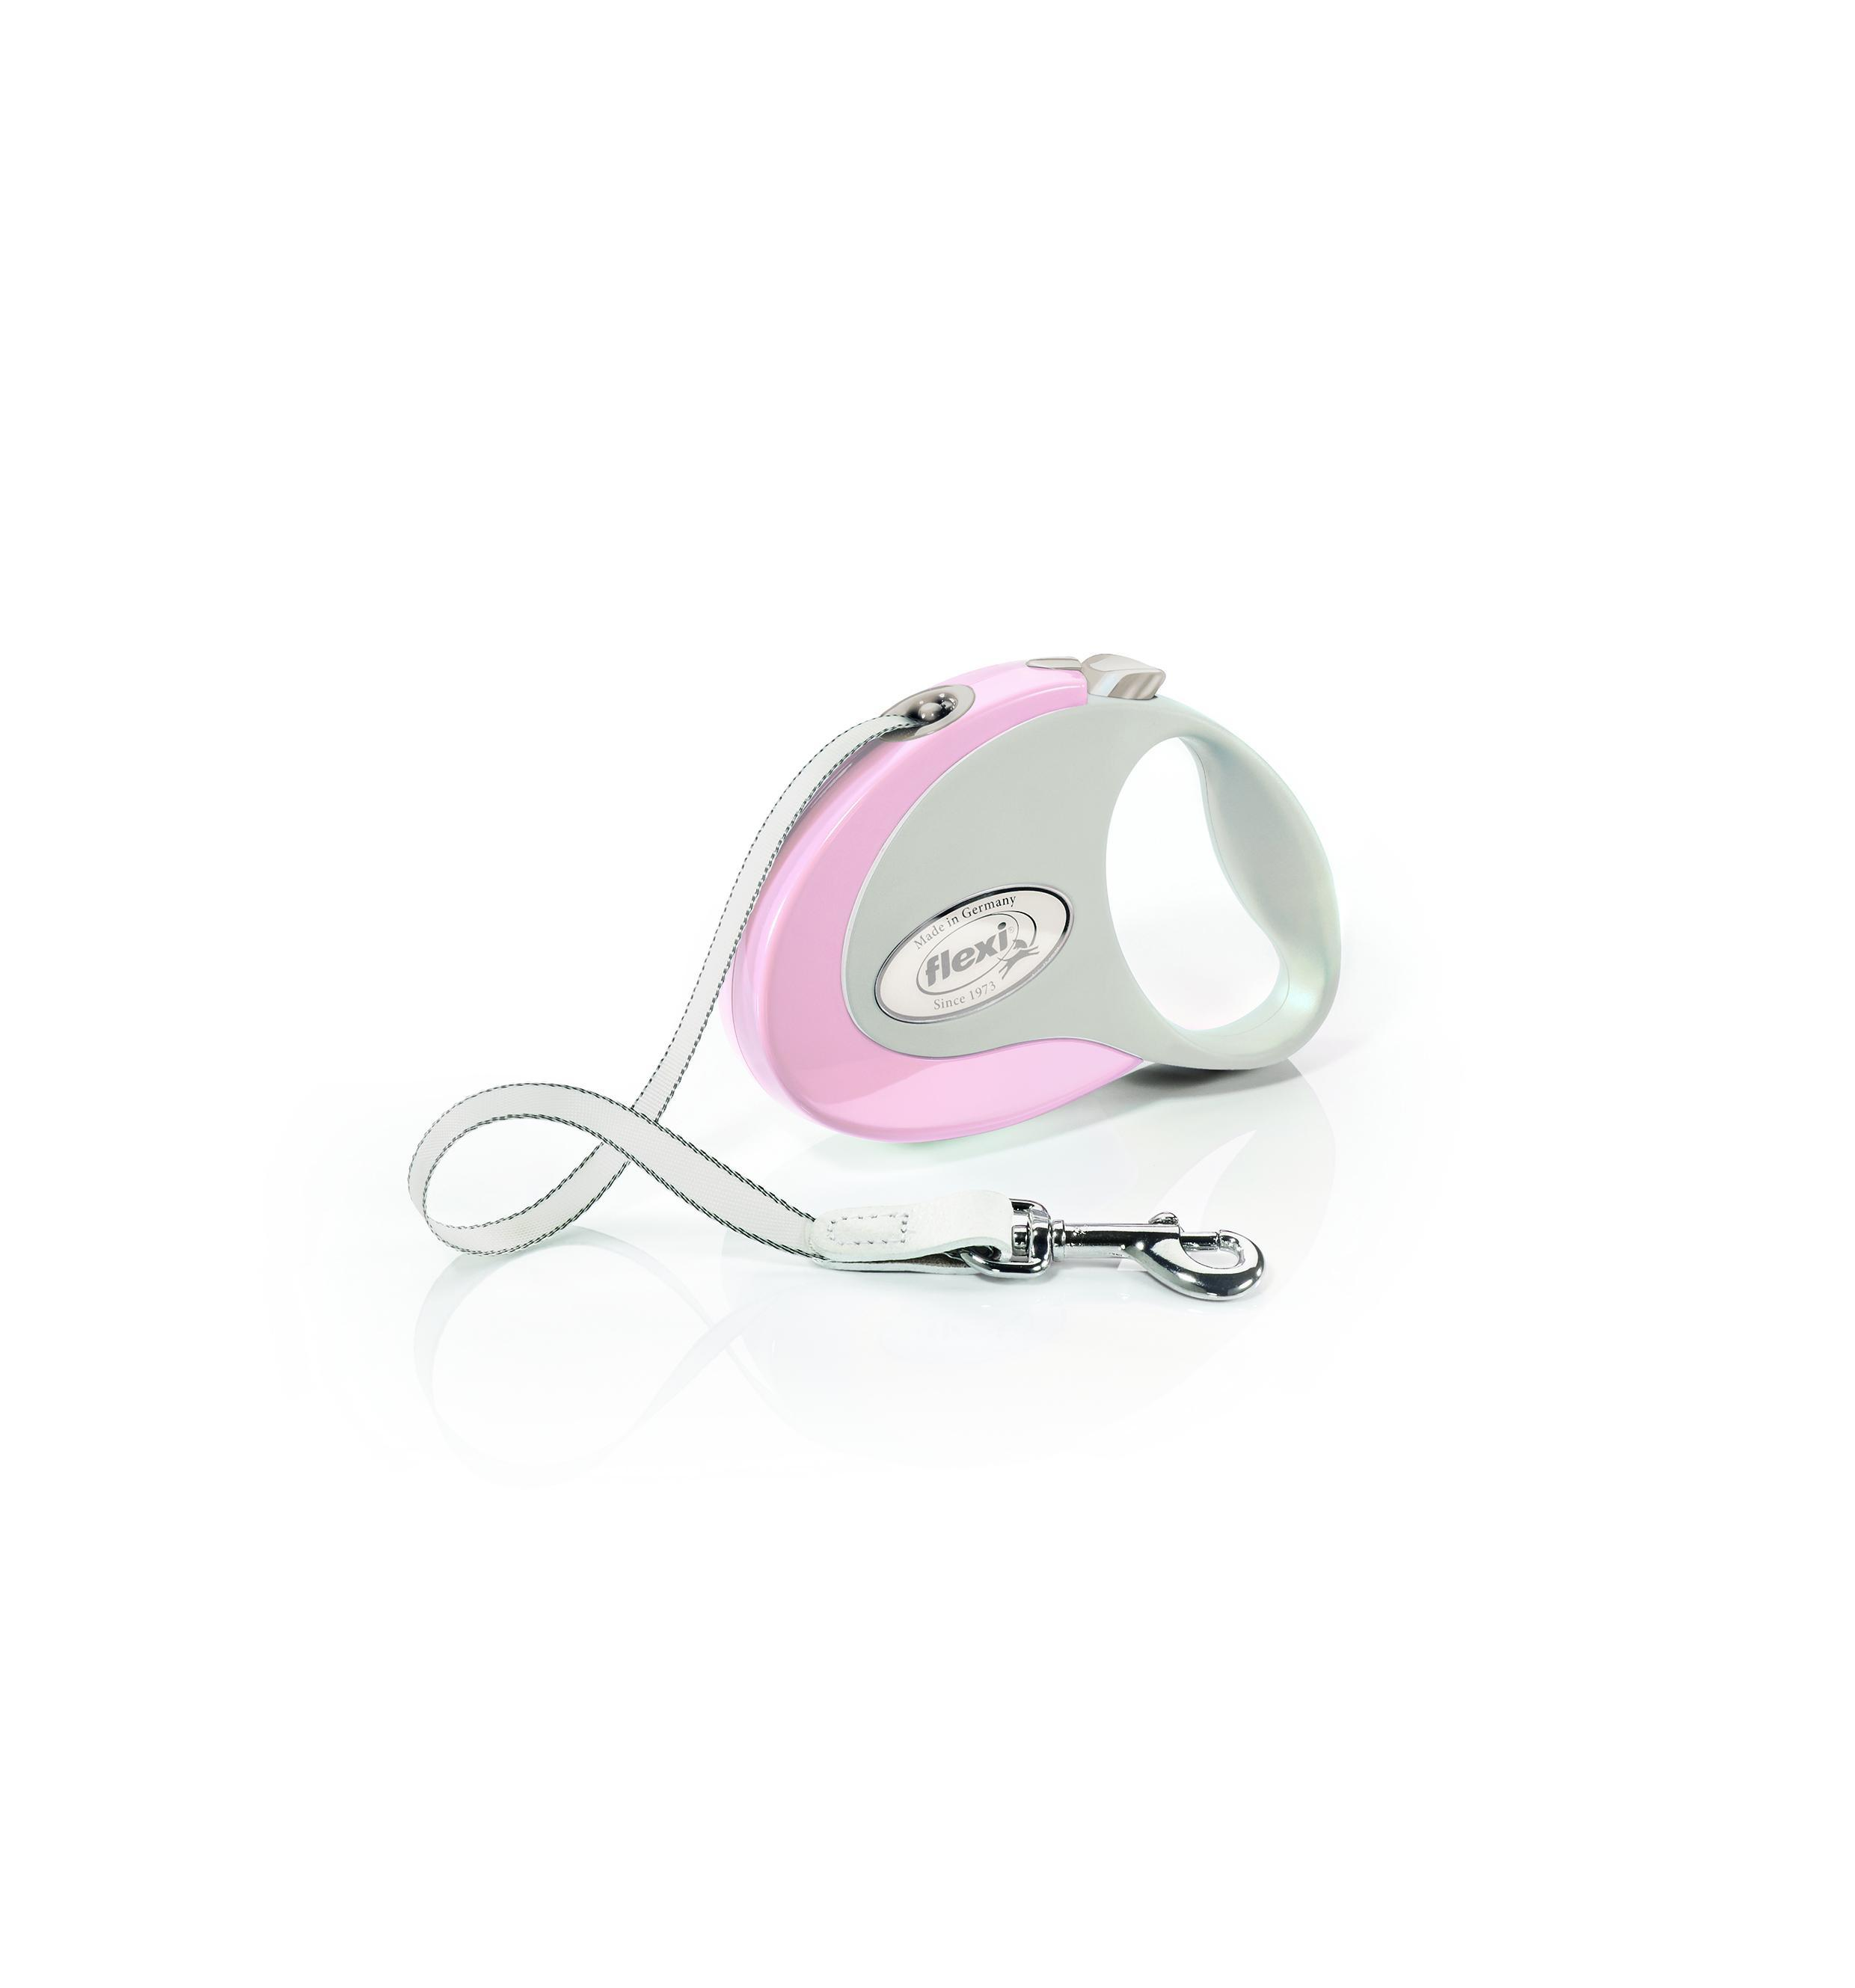 Flexi New Style Tape Dog Leash, Rose/Gray, Small, 10-ft